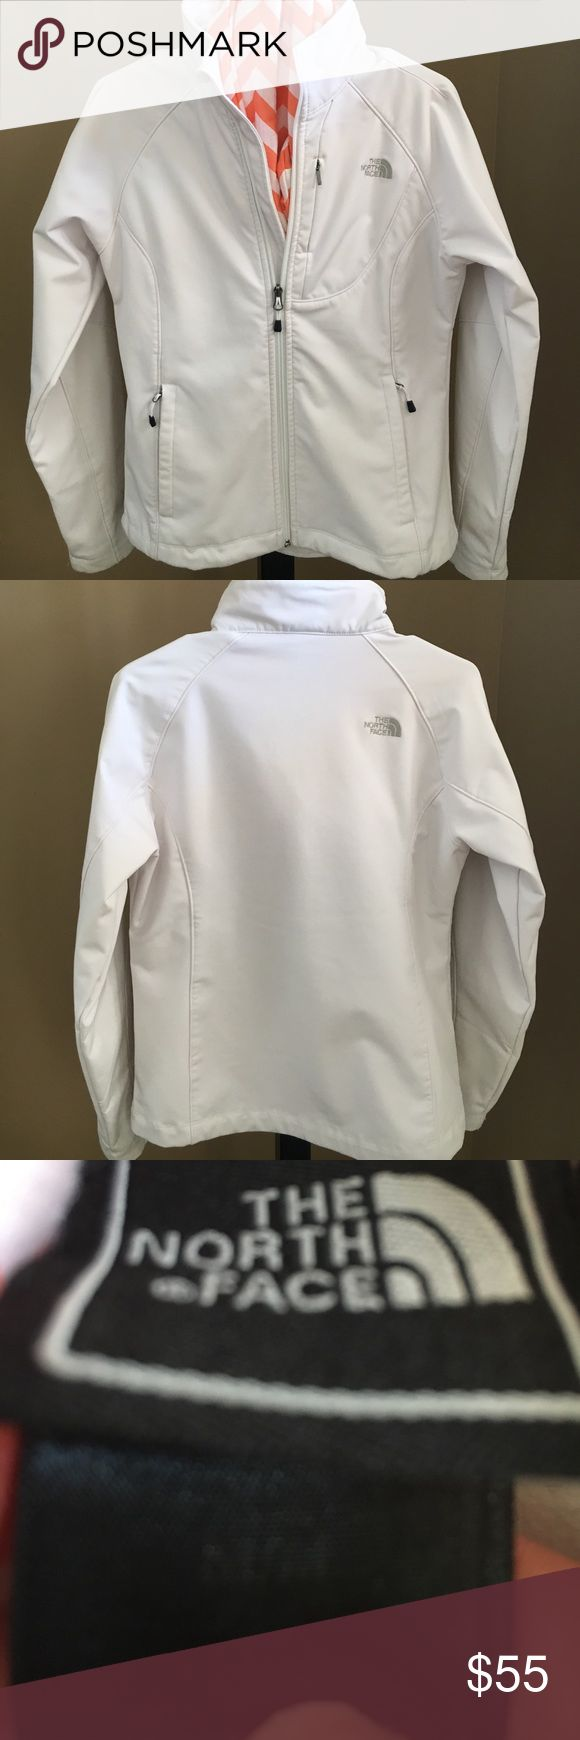 North Face Shell Jacket NWOT. White North Face. Size medium. Worn once. Excellent condition. See photos:) North Face Jackets & Coats